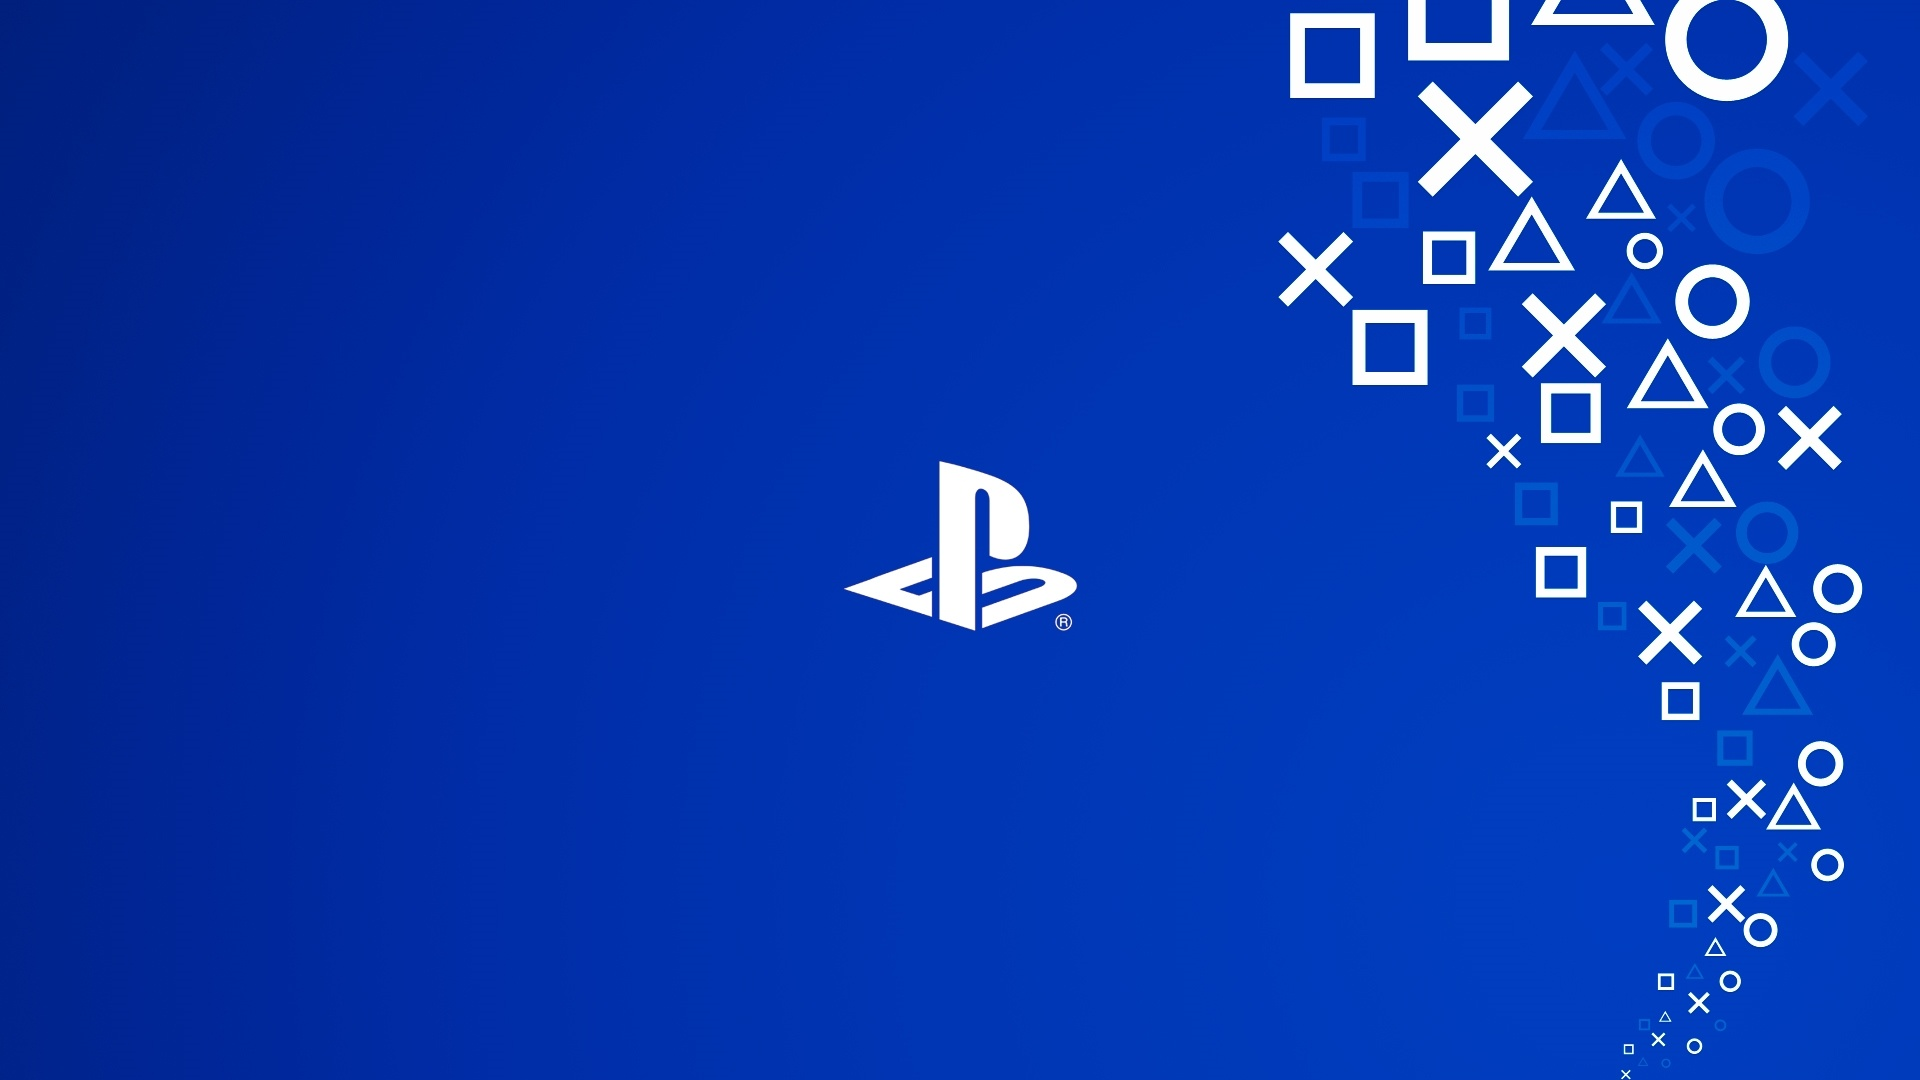 Playstation 5 Wallpaper for pc